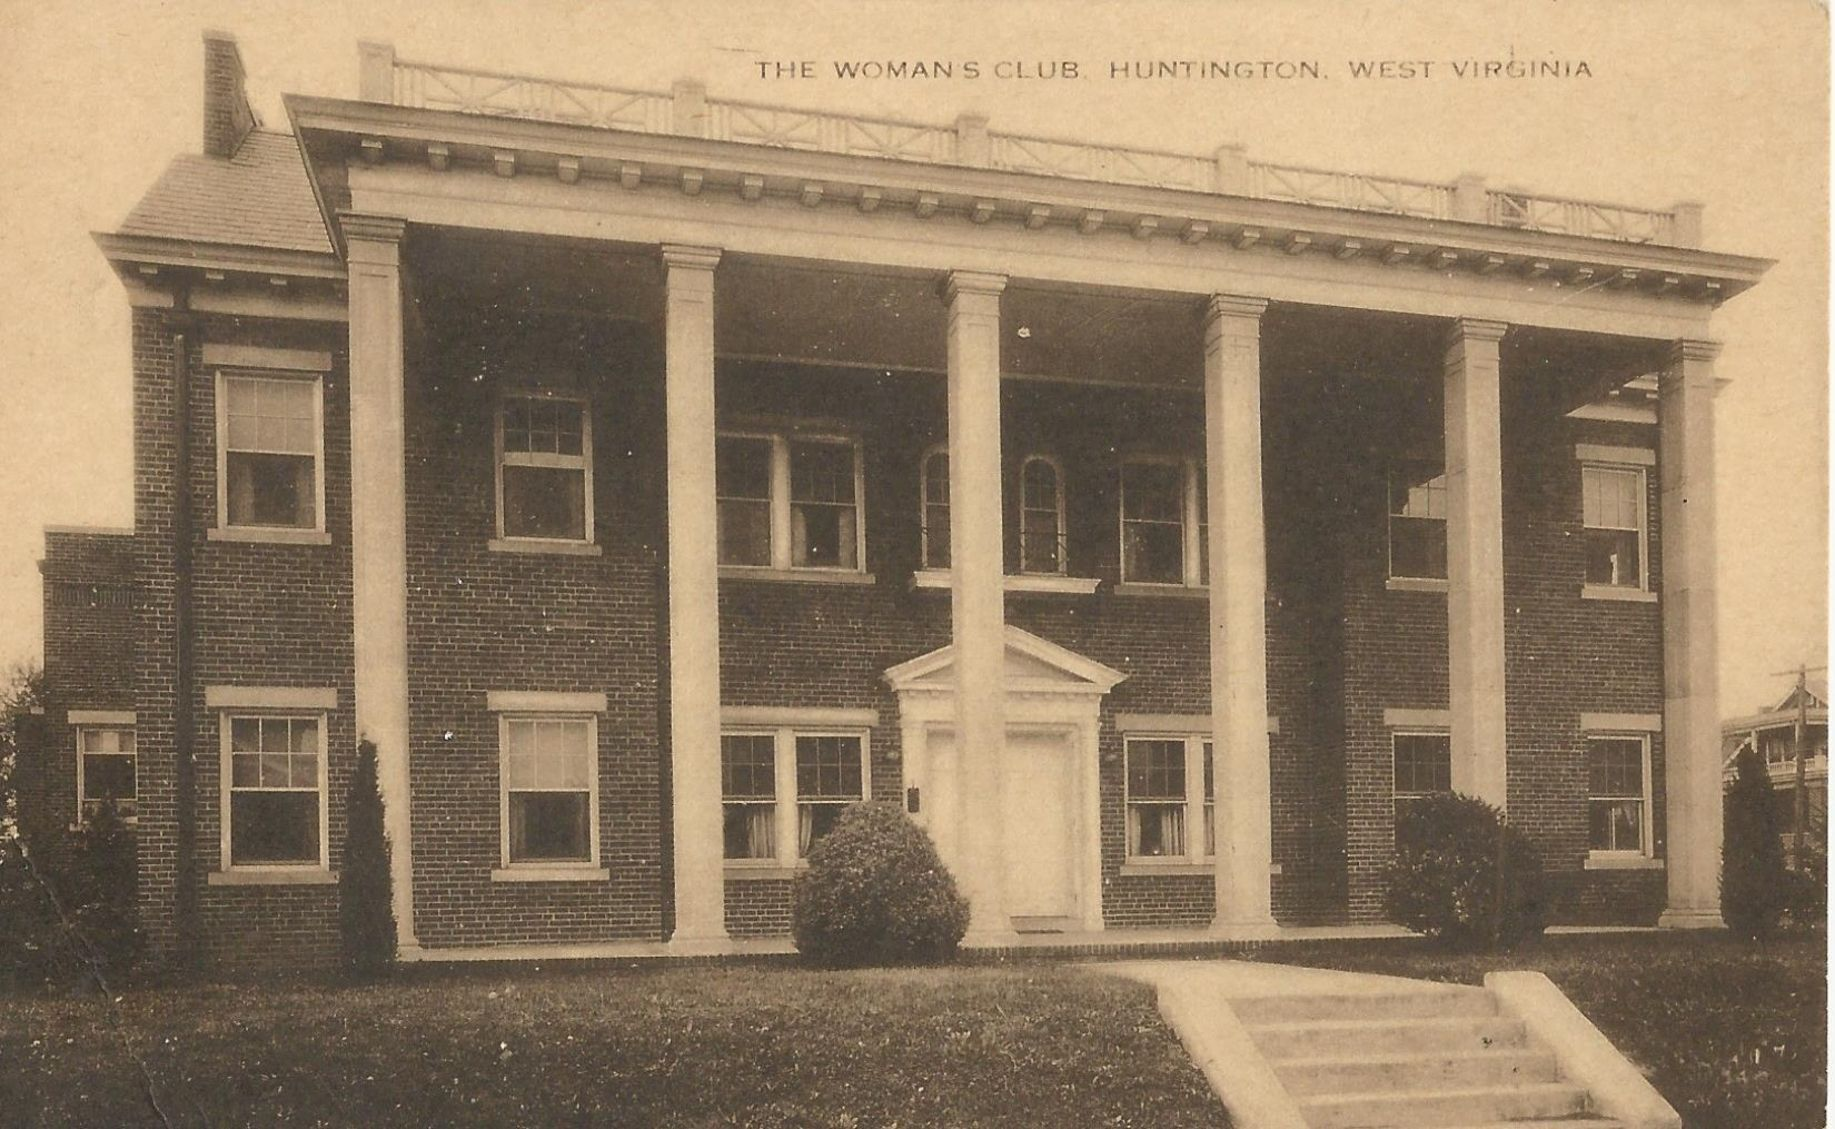 Lost Huntington: Woman's Club of Huntington